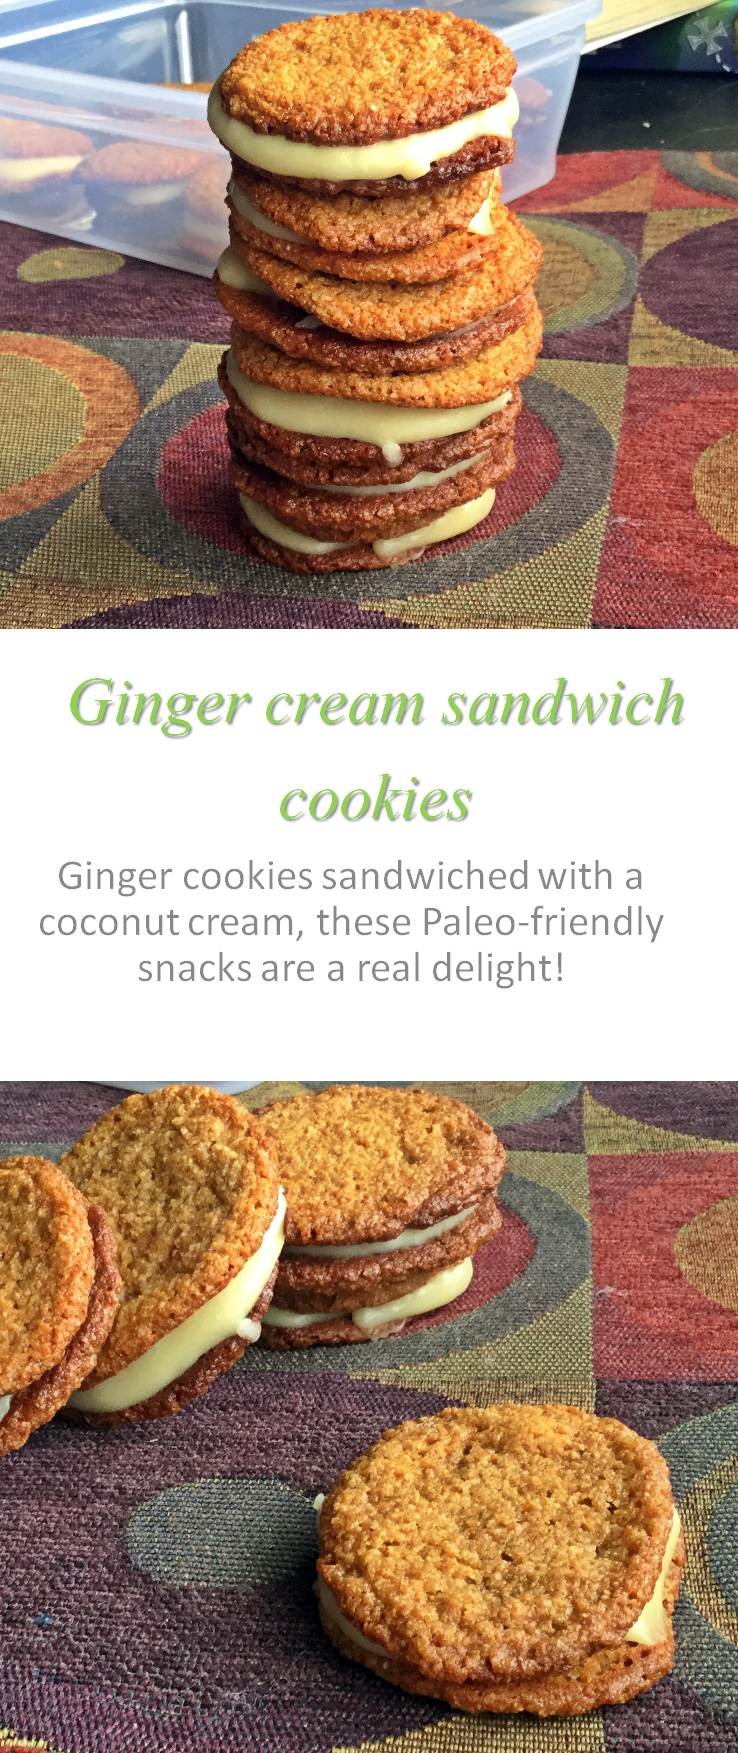 Paleo-friendly ginger cream sandwich cookies - for those times when you want something extra (but no refined sugar) with ginger cookies! #ginger